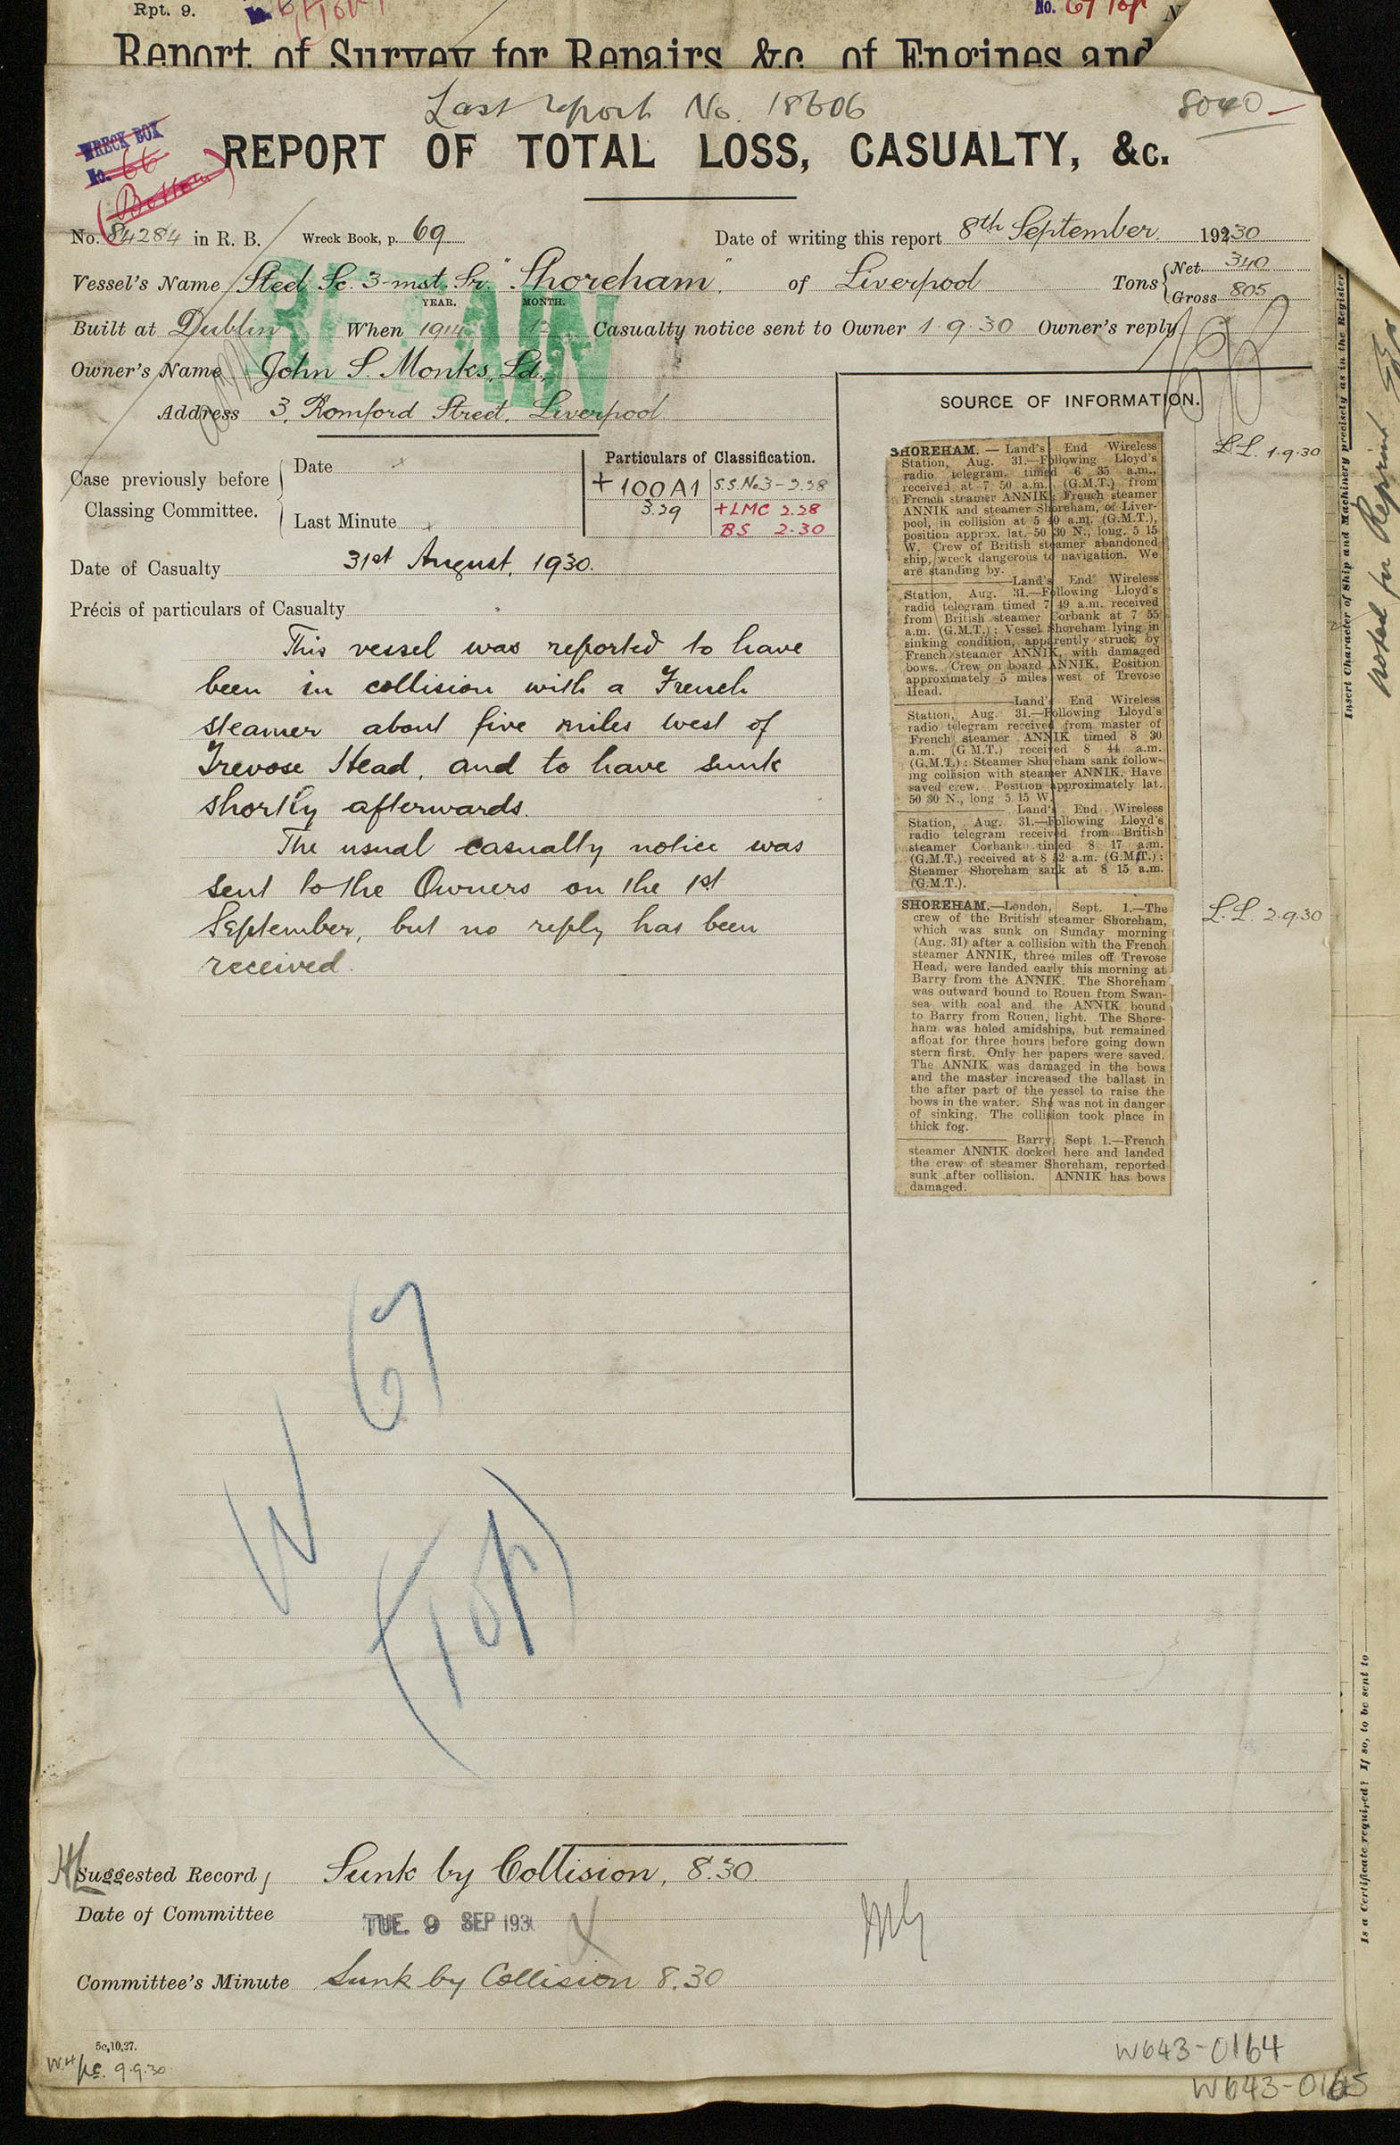 A sample of the Wreck Report of Total Loss and Casualty used by Lloyd's Register. This report records the sinking of the steel screw three masted schooner Shoreham after a collision with a French trawler, 5 miles off Trevose Head.